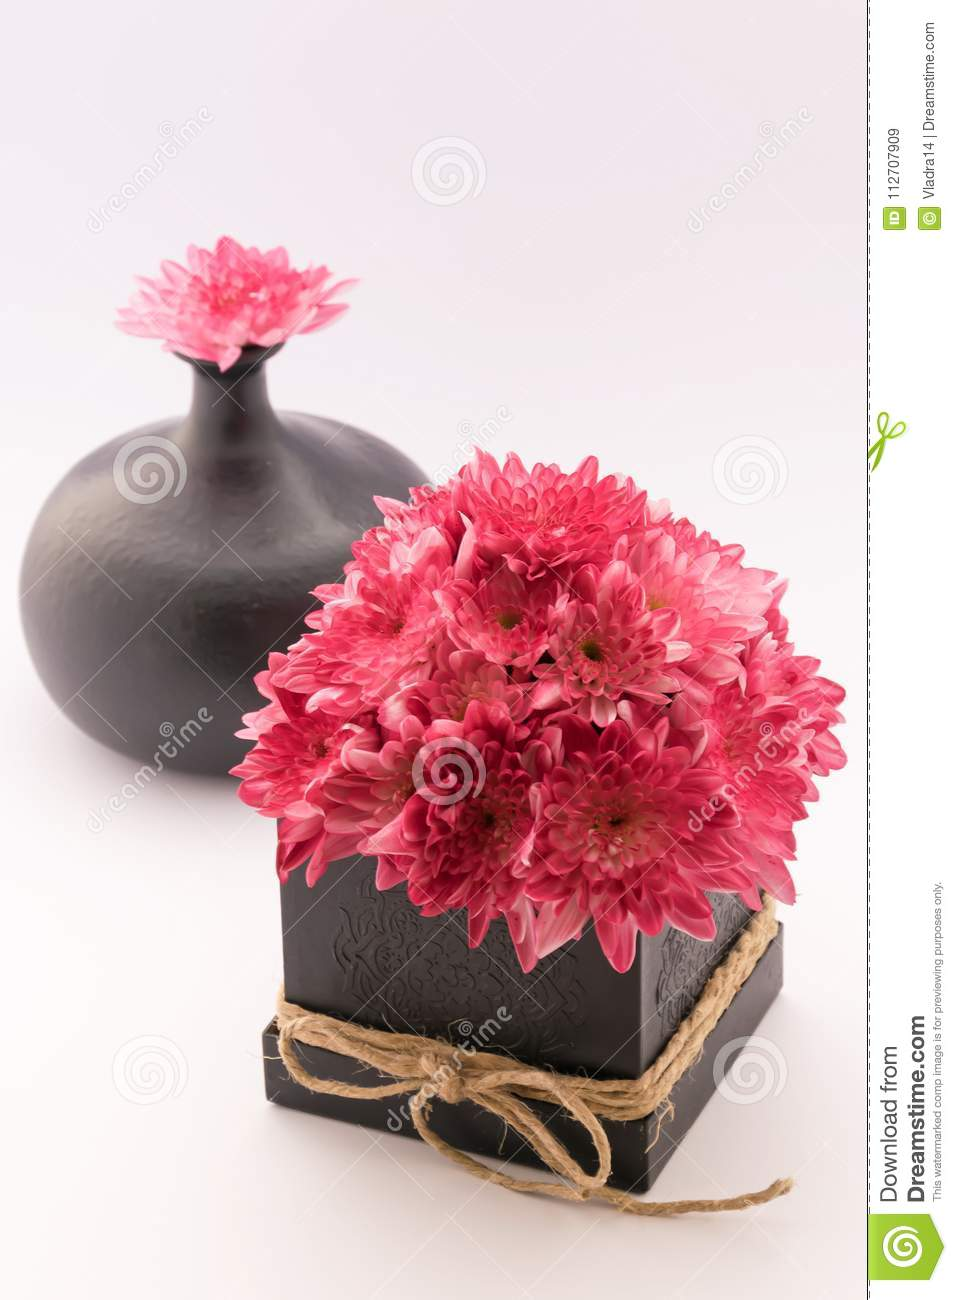 A bouquet of flowers for an anniversary gift valentines day women royalty free stock photo download a bouquet of flowers for an anniversary izmirmasajfo